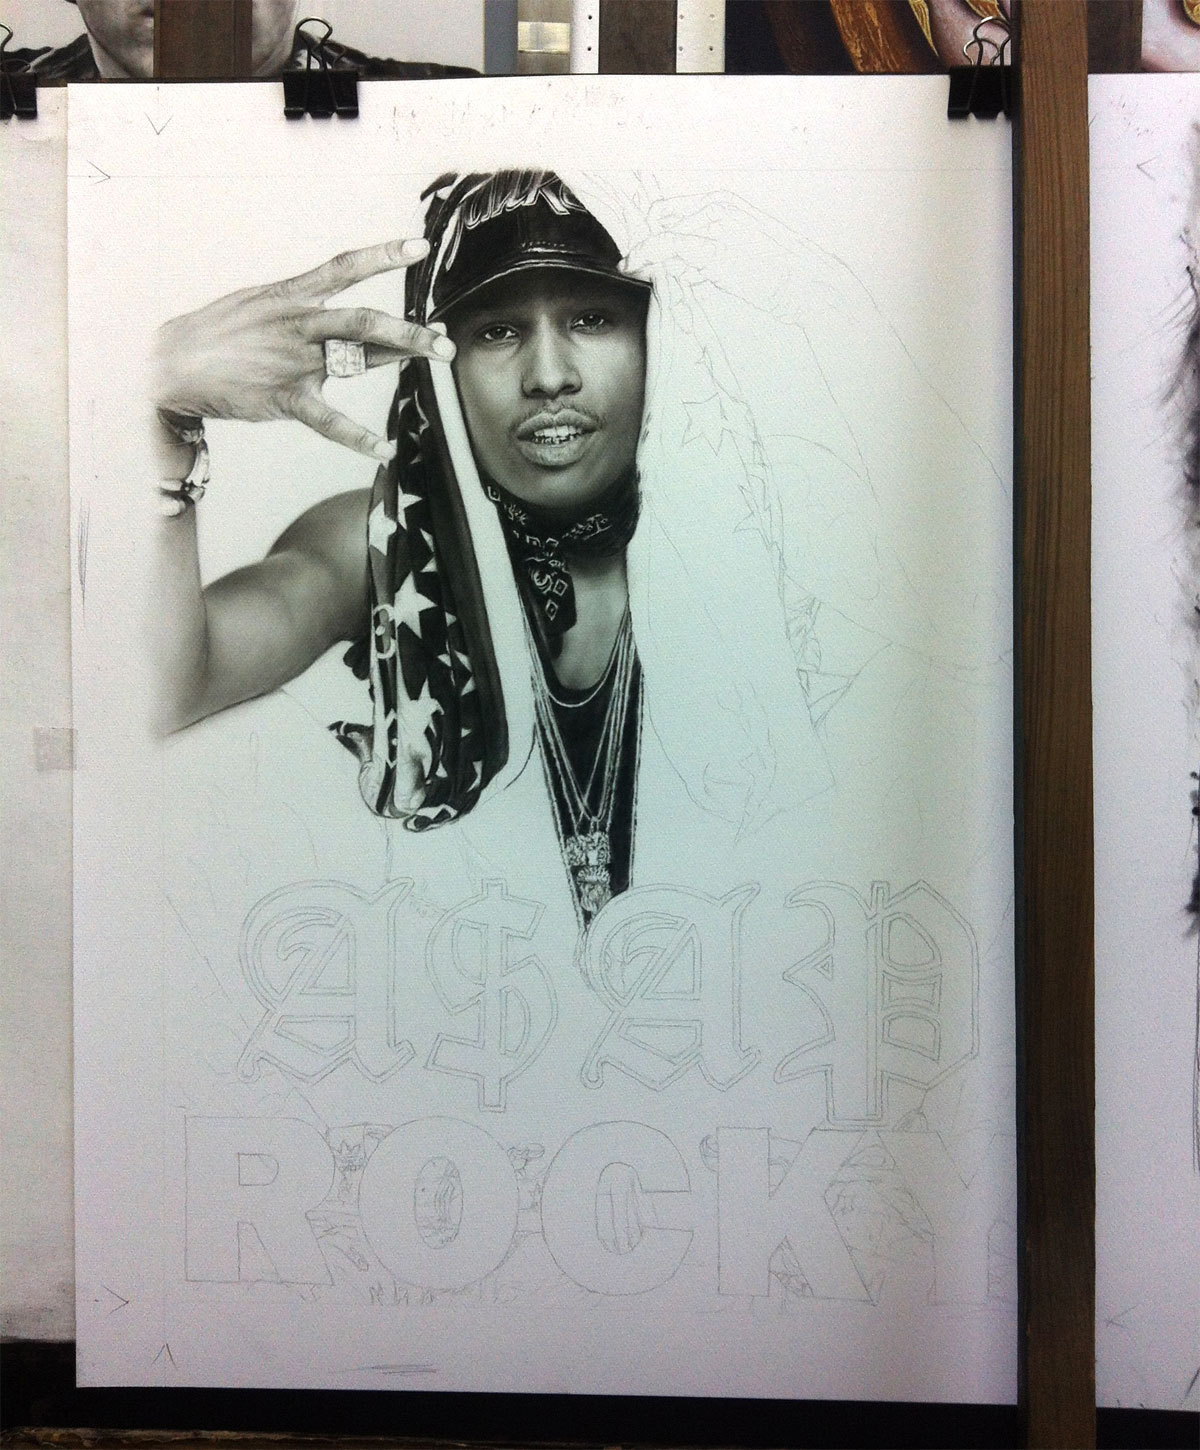 A$AP Rocky's charcoal drawing at 25% completion. The size of this is 60 x 40 inches and it's coming along pretty well.